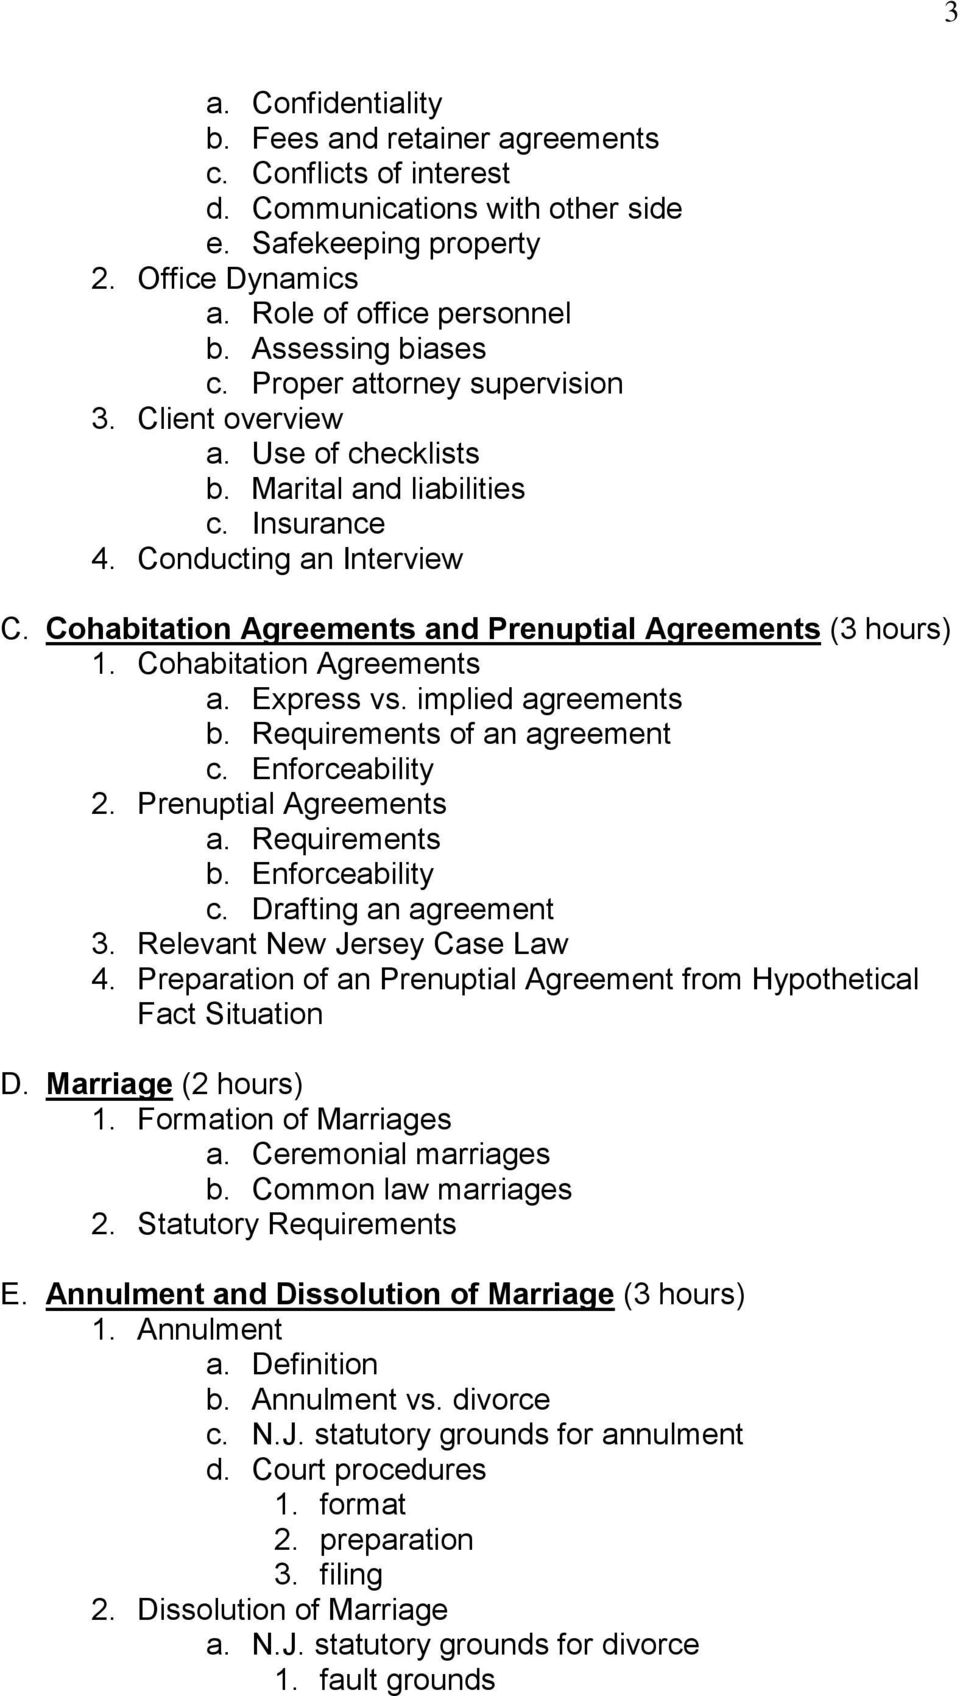 Cohabitation Agreements and Prenuptial Agreements (3 hours) 1. Cohabitation Agreements a. Express vs. implied agreements b. Requirements of an agreement c. Enforceability 2. Prenuptial Agreements a.